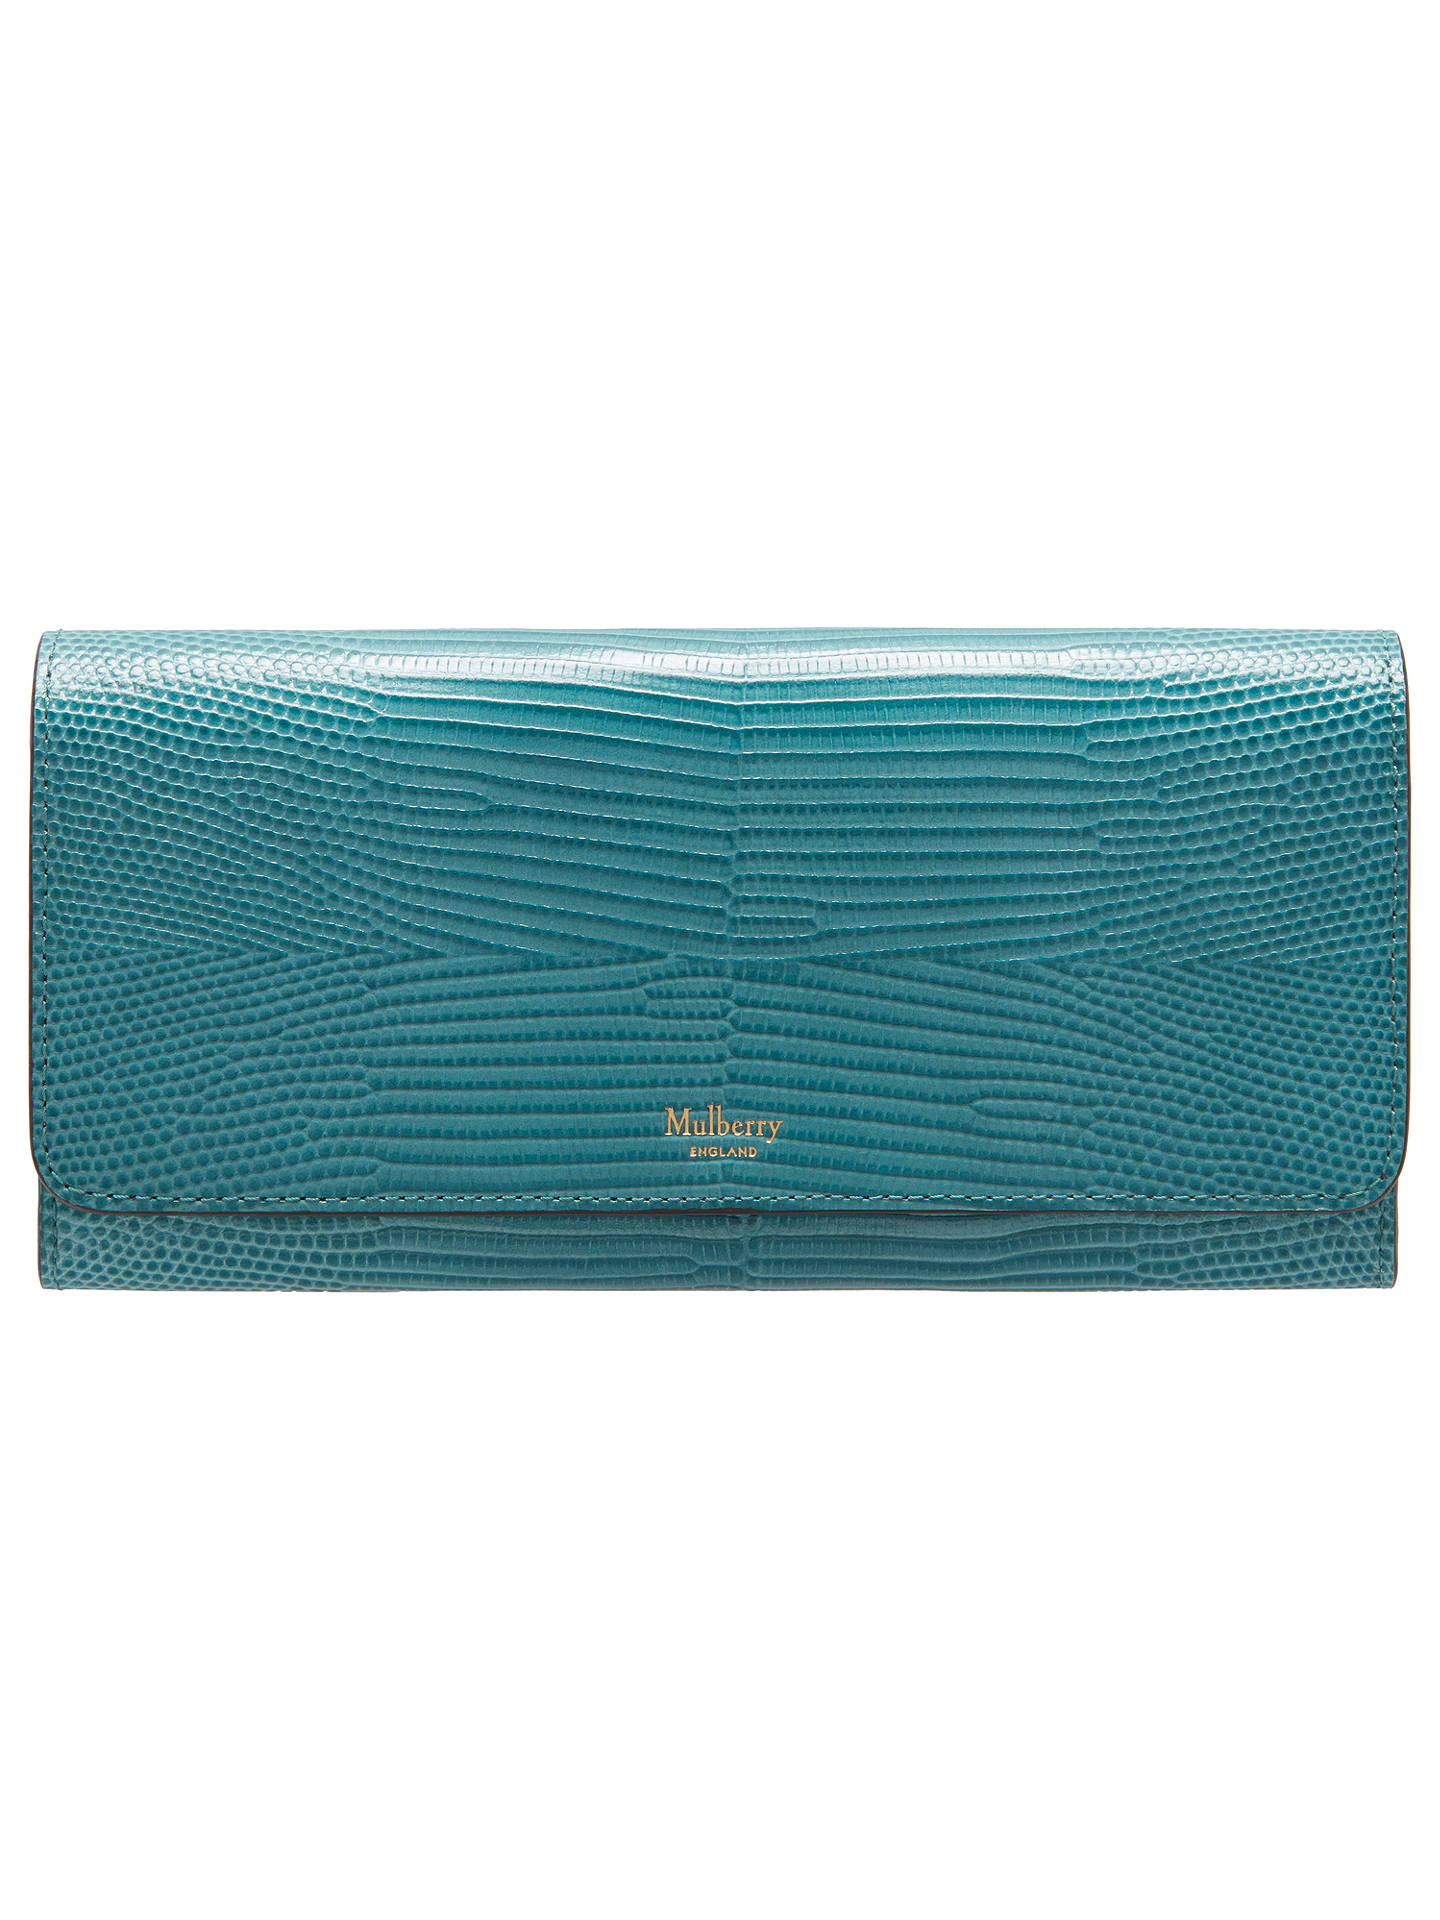 0ed8ebc0631f24 Buy Mulberry Continental Embossed Lizard Leather Purse, Frozen Online at  johnlewis.com ...